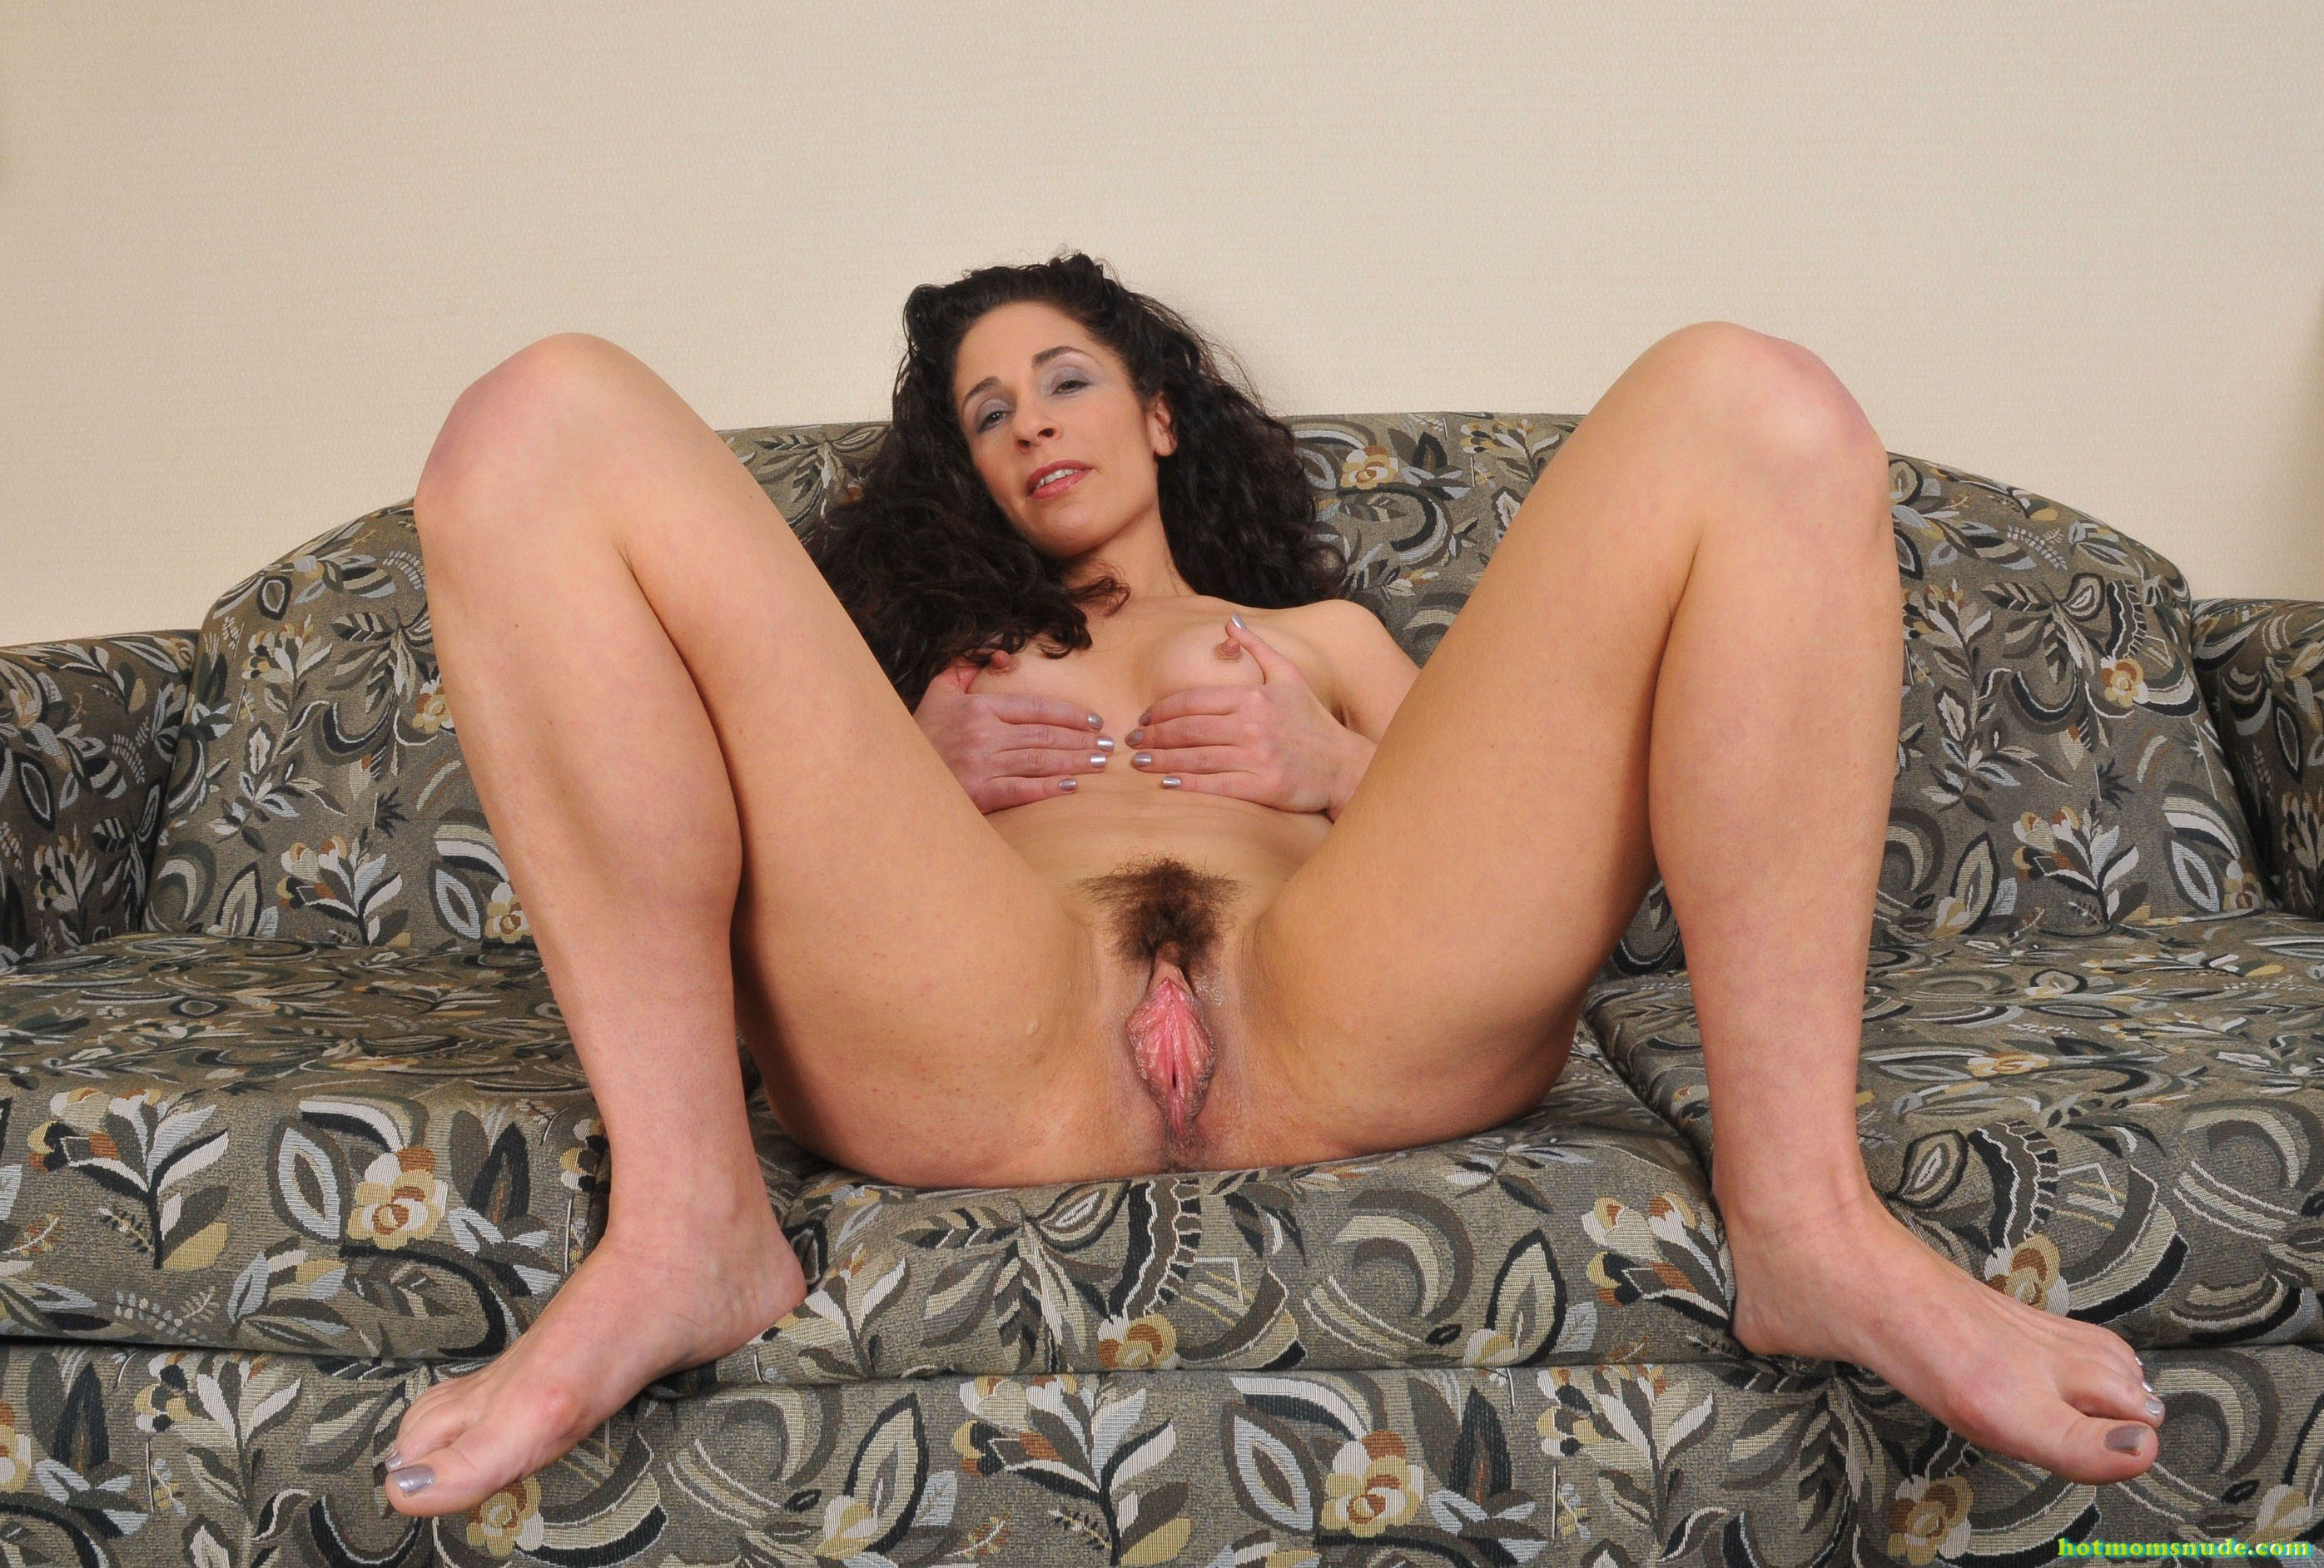 Milf Morganna Nude Pics And Biography - Hot Moms Nude-3842